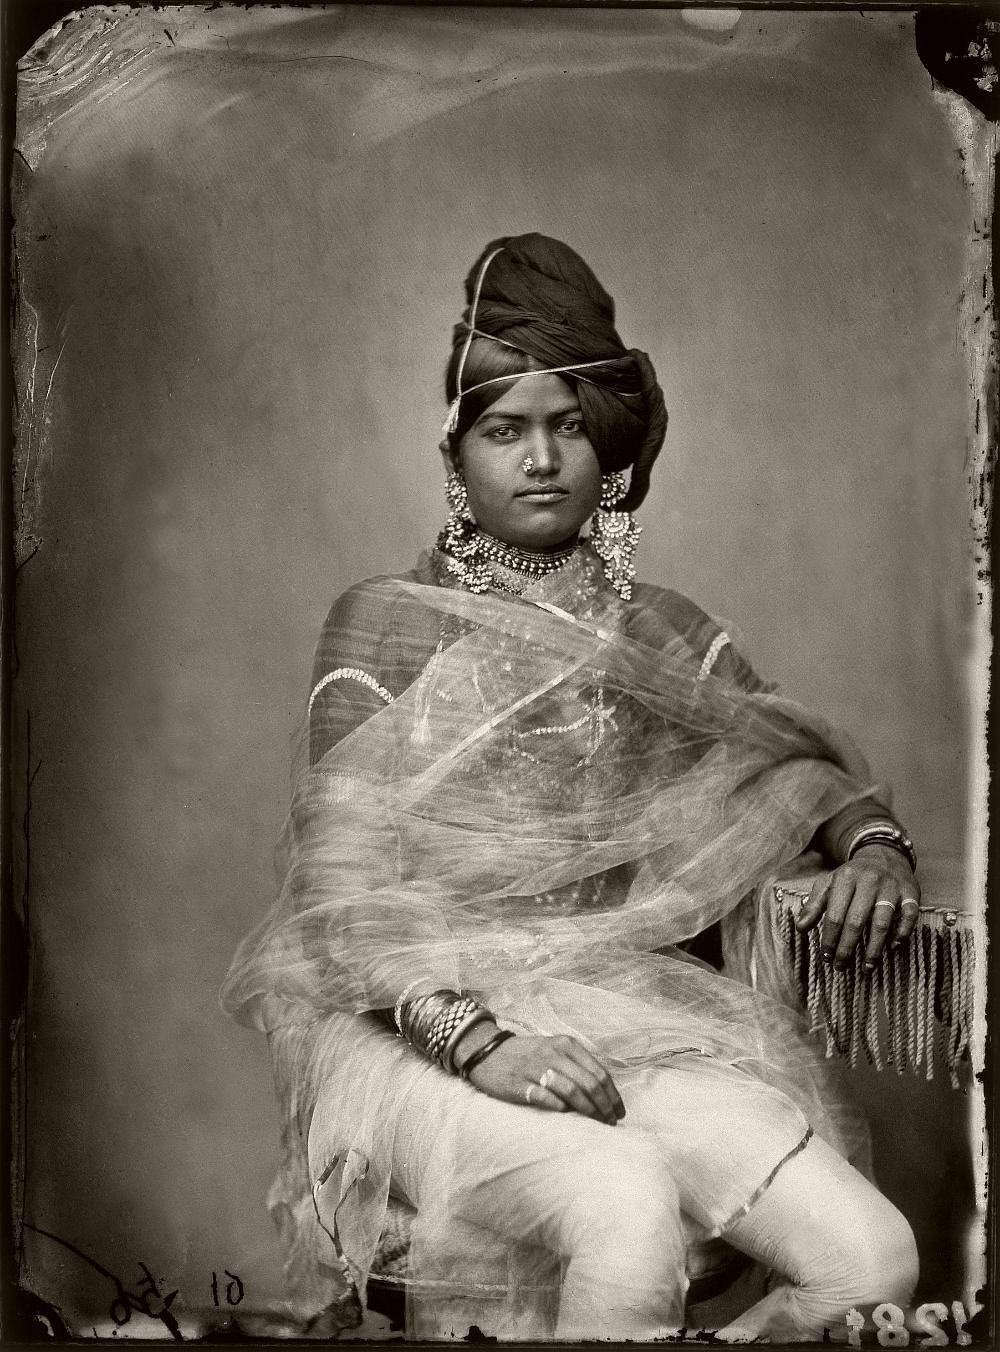 Portrait of a woman in the harem of the royal palace of Jaipur, India, circa 1857. (Photo by Maharaja Ram Singh III/Alinari Archives, Florence/Alinari via Getty Images)